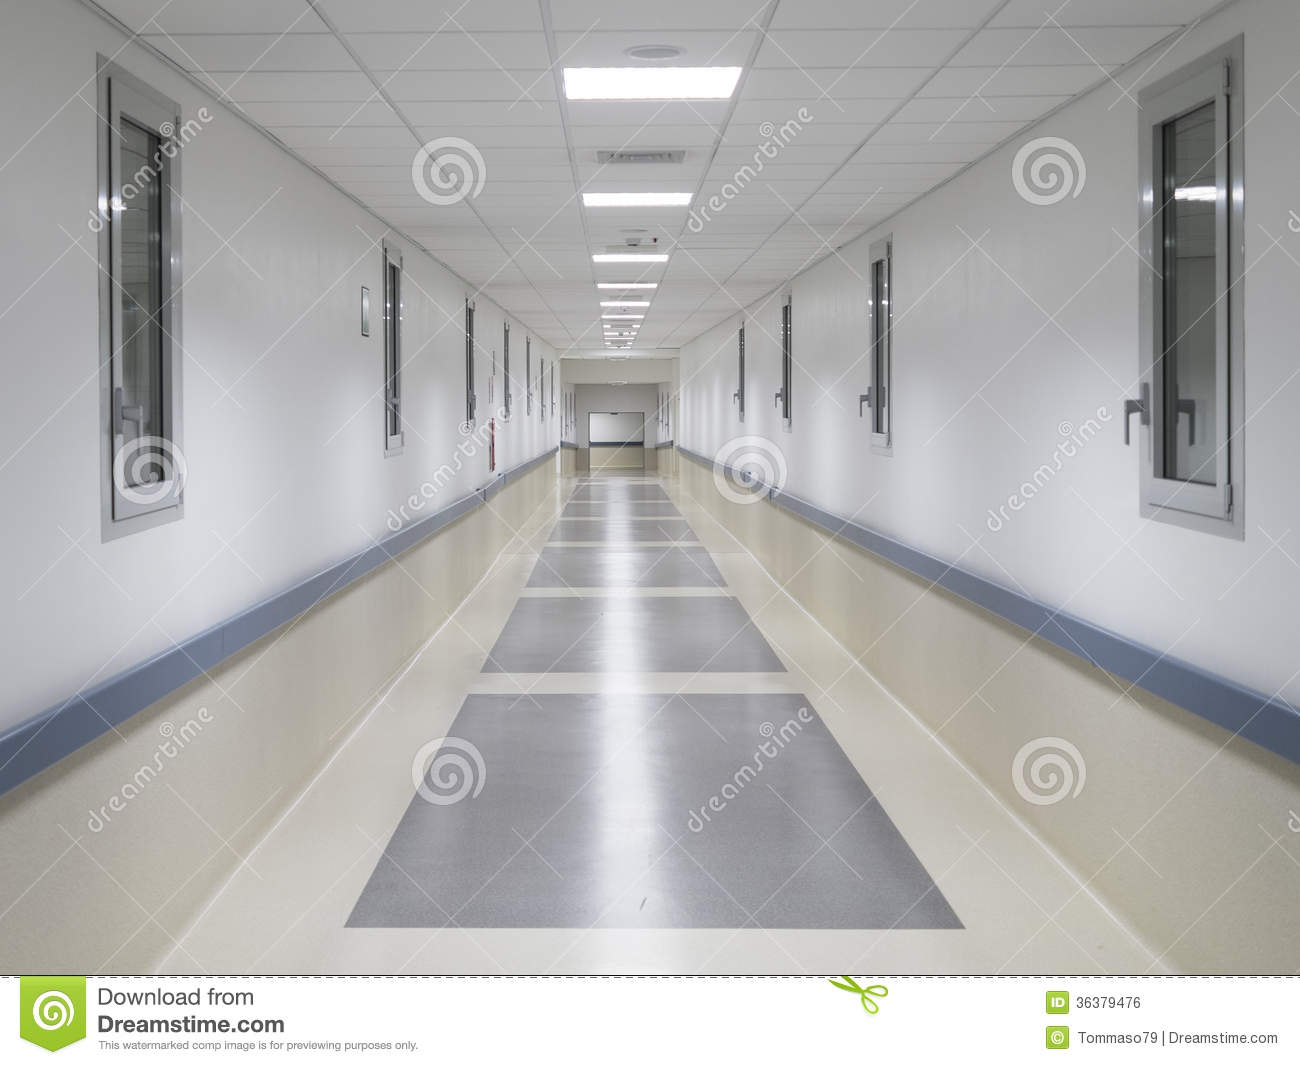 Hospital Corridor Royalty Free Stock Image - Image: 36379476